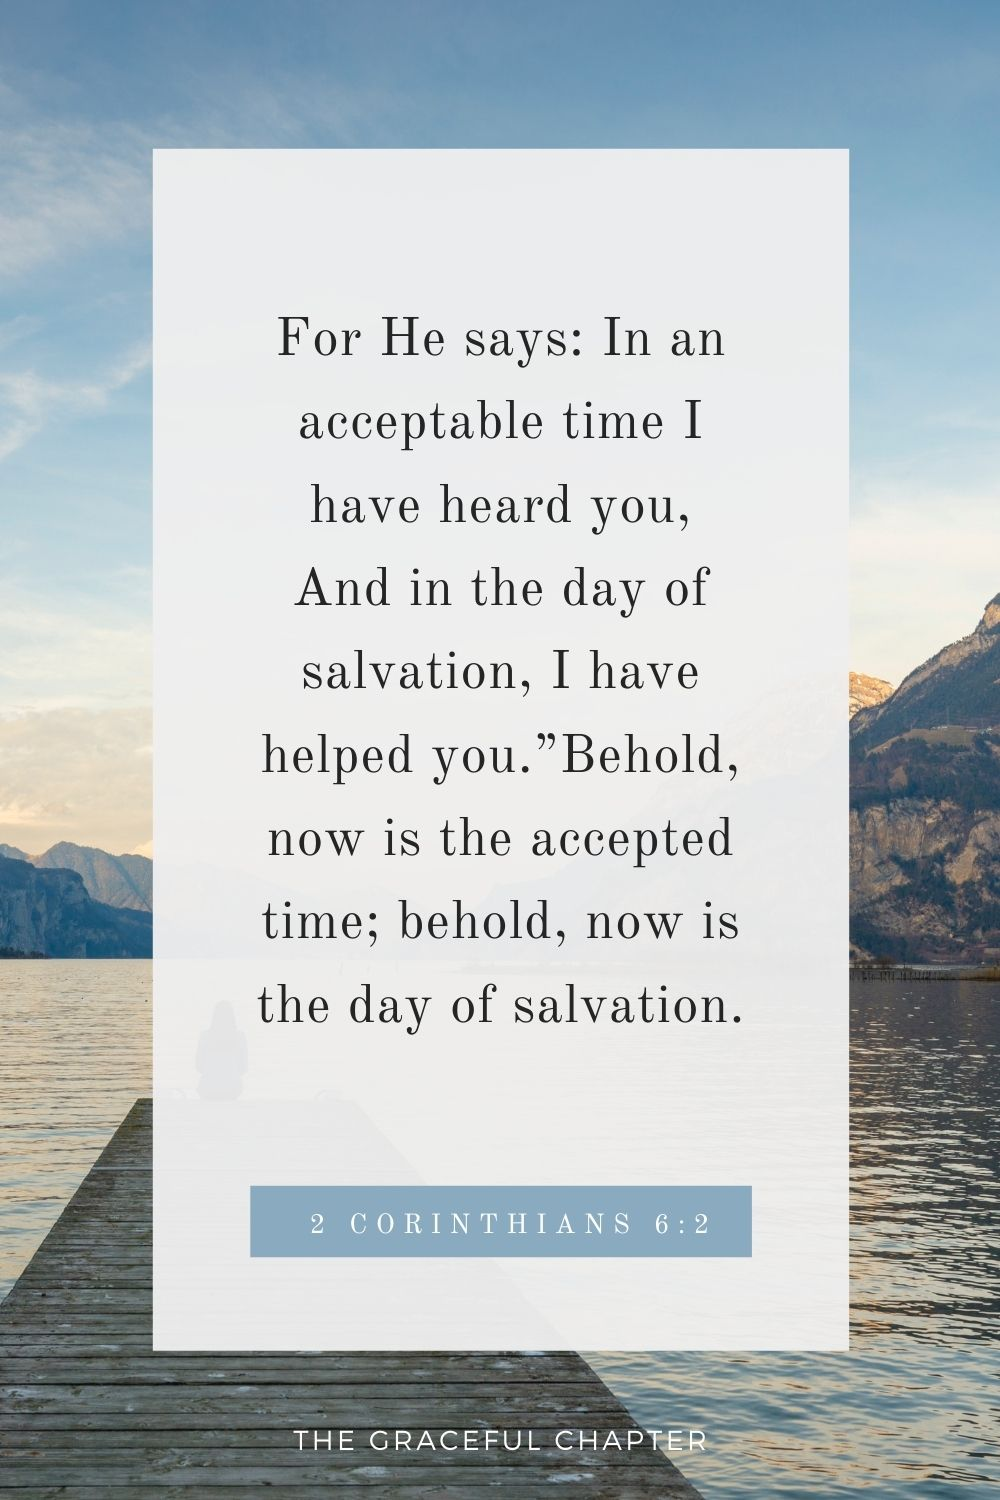 """For He says: In an acceptable time I have heard you, And in the day of salvation, I have helped you.""""Behold, now is the accepted time; behold, now is the day of salvation. 2 Corinthians 6:2"""